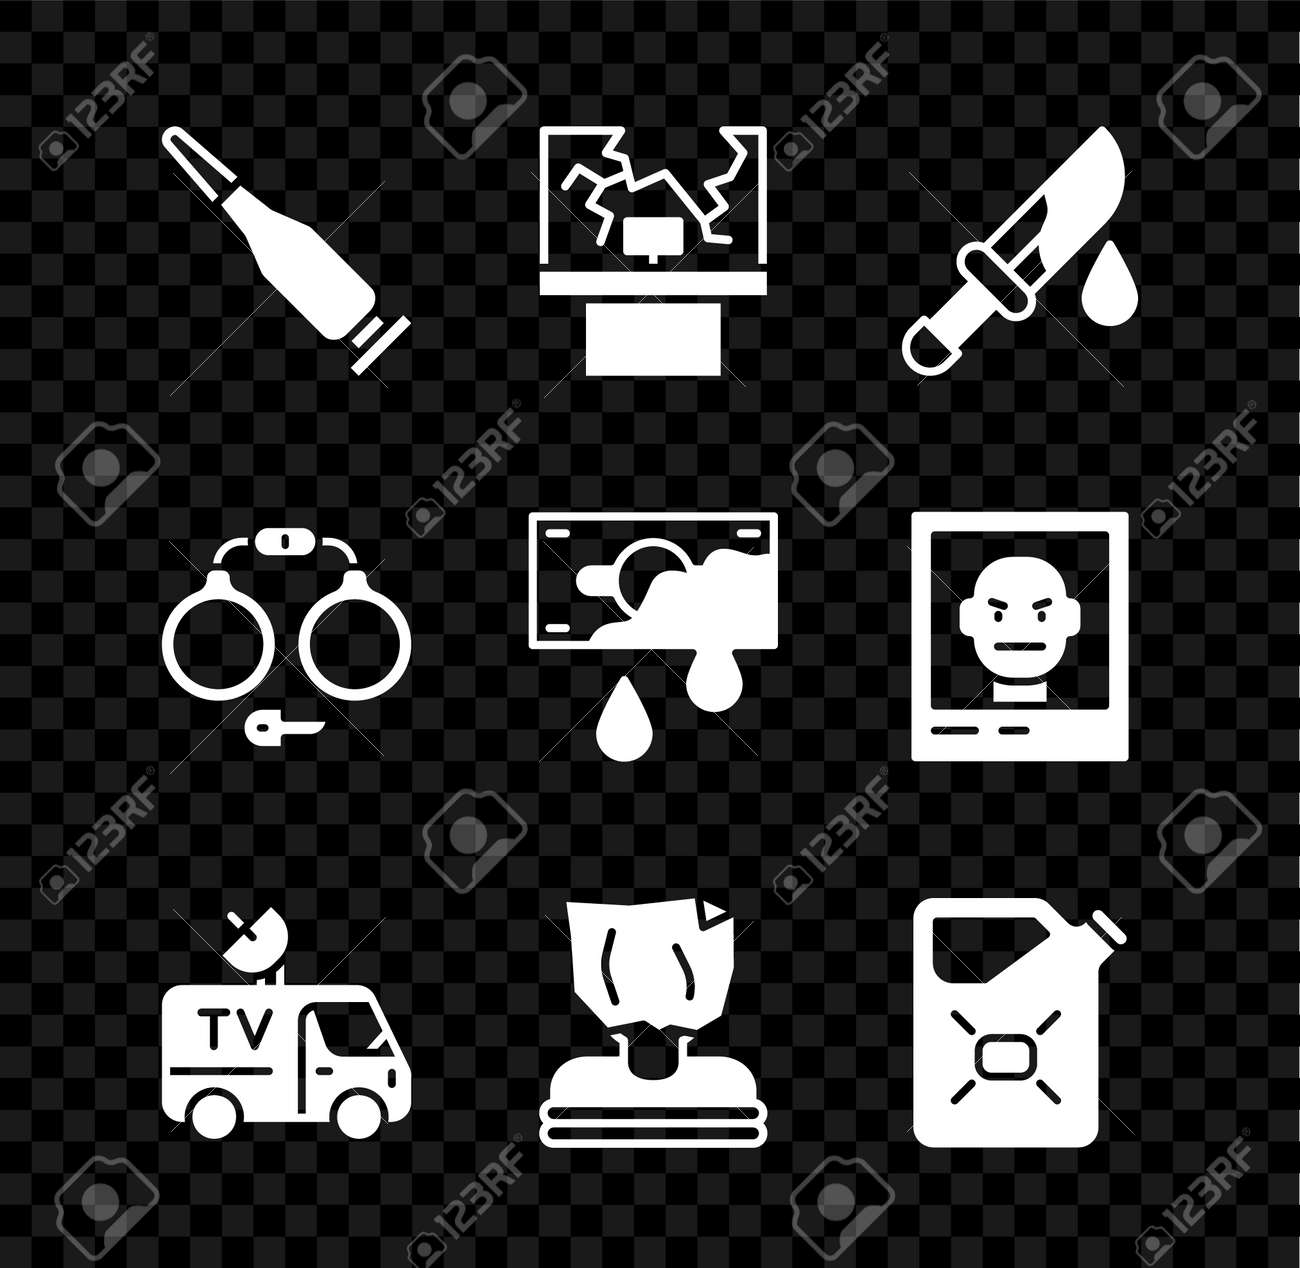 Set Bullet, Broken window, Bloody knife, TV News car, Kidnaping, Canister fuel, Handcuffs and money icon. Vector - 173396232